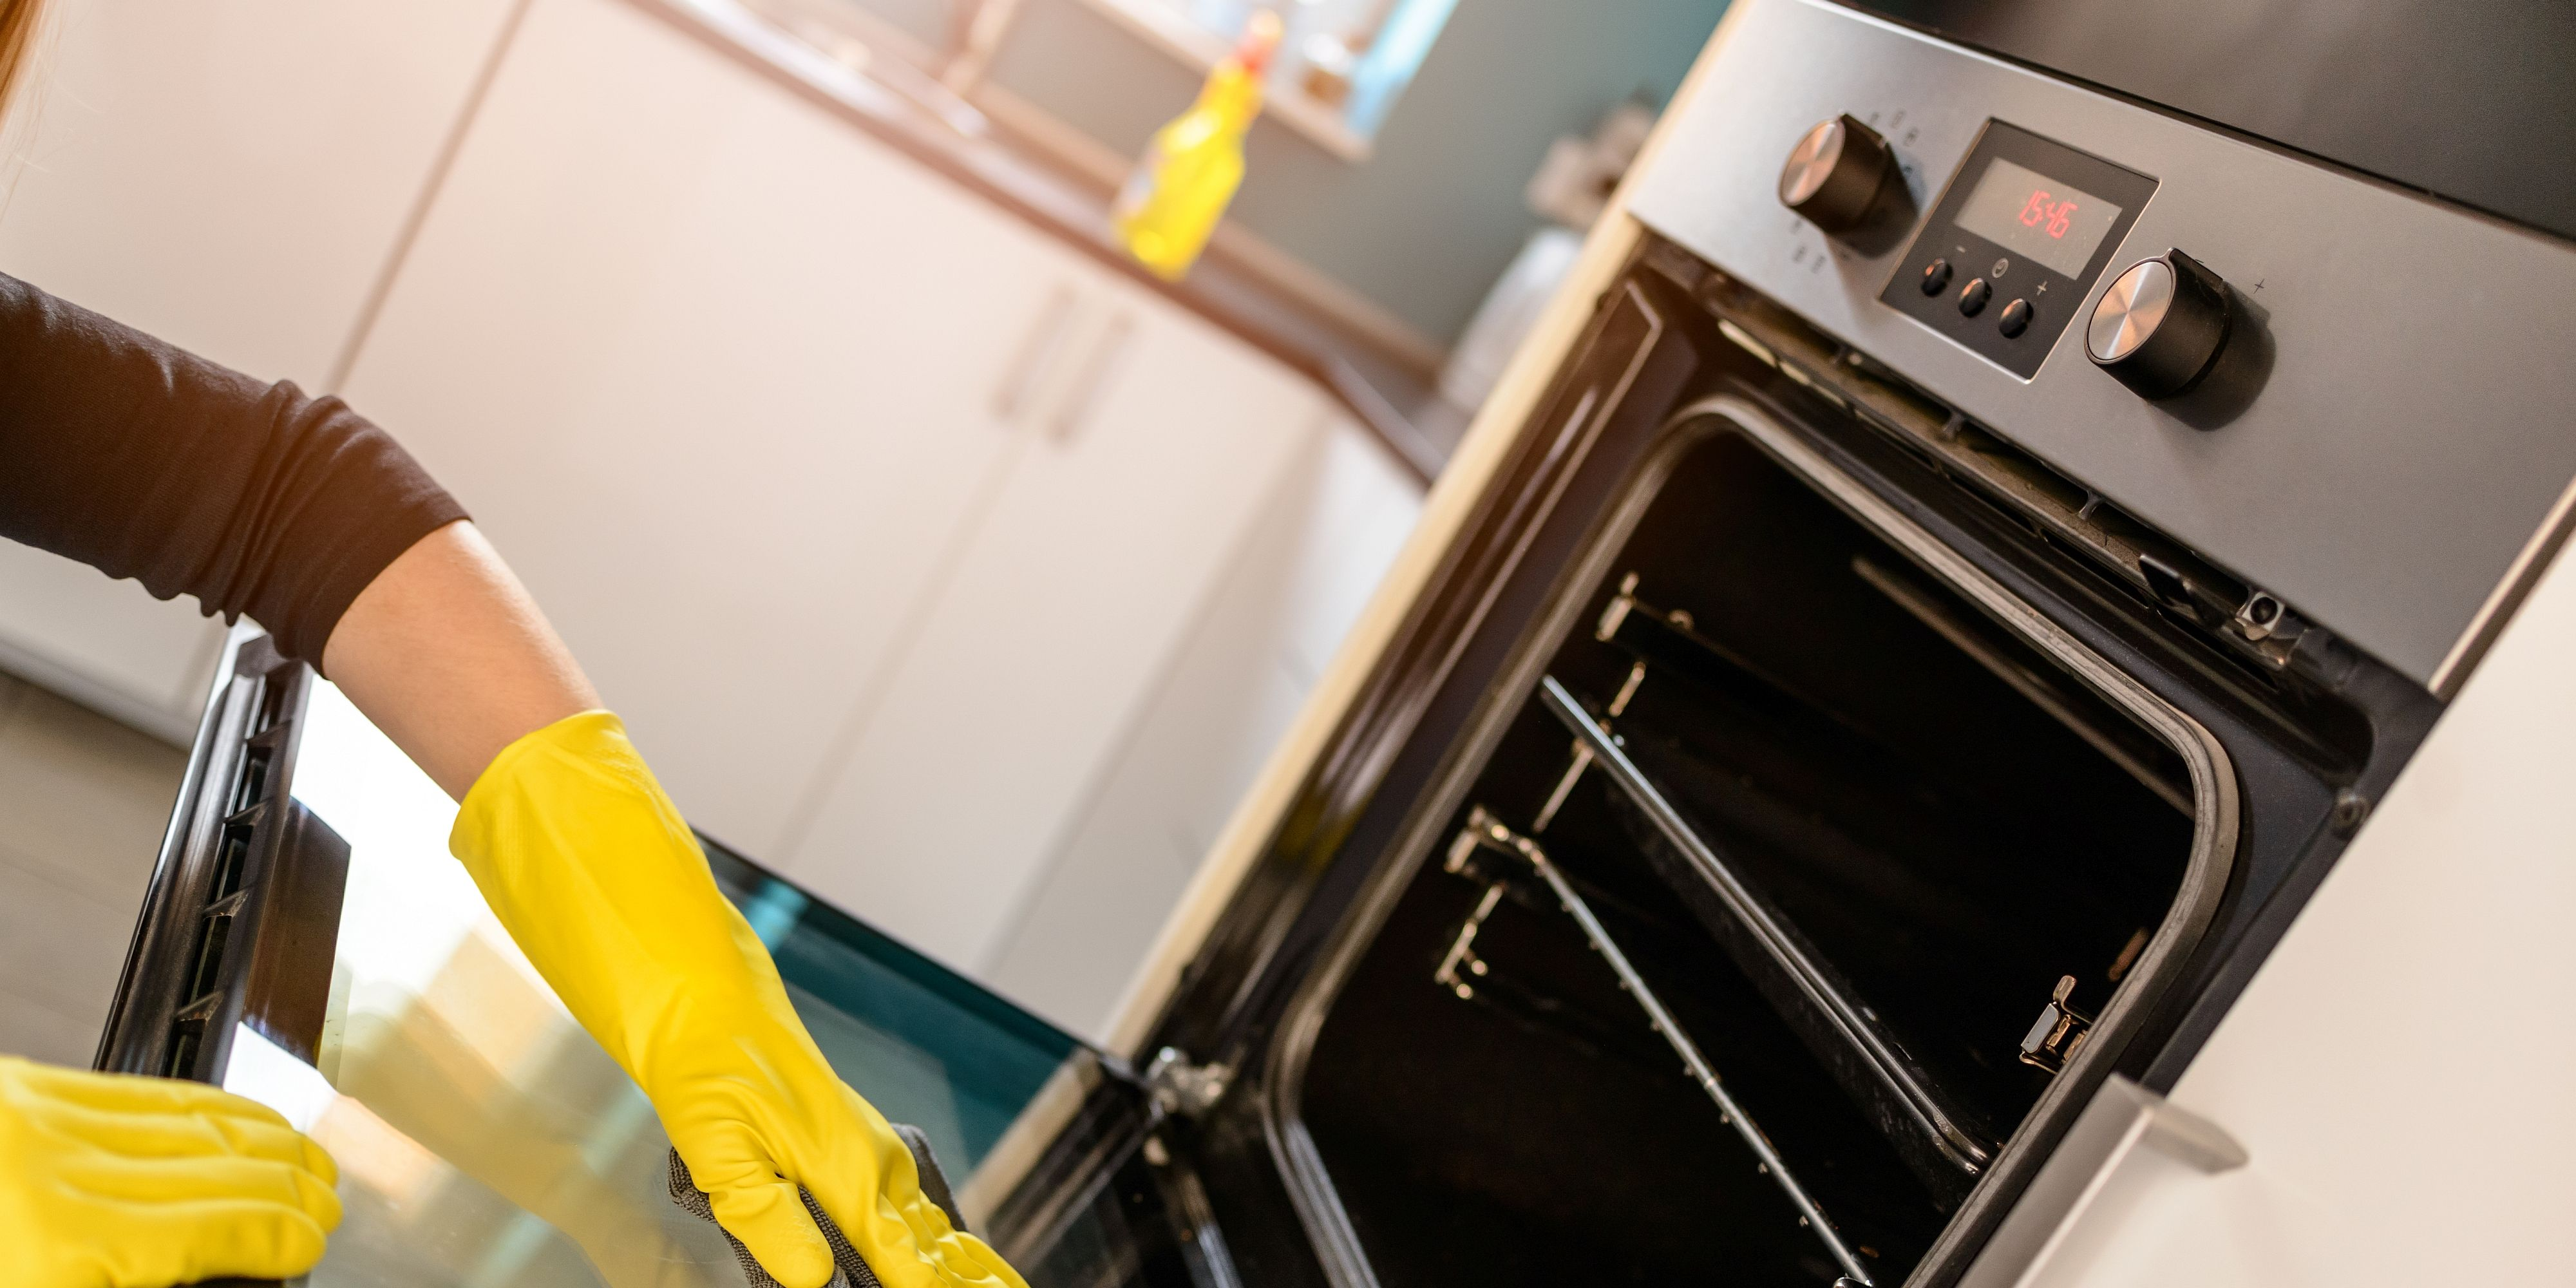 Easiest to clean an oven quickly